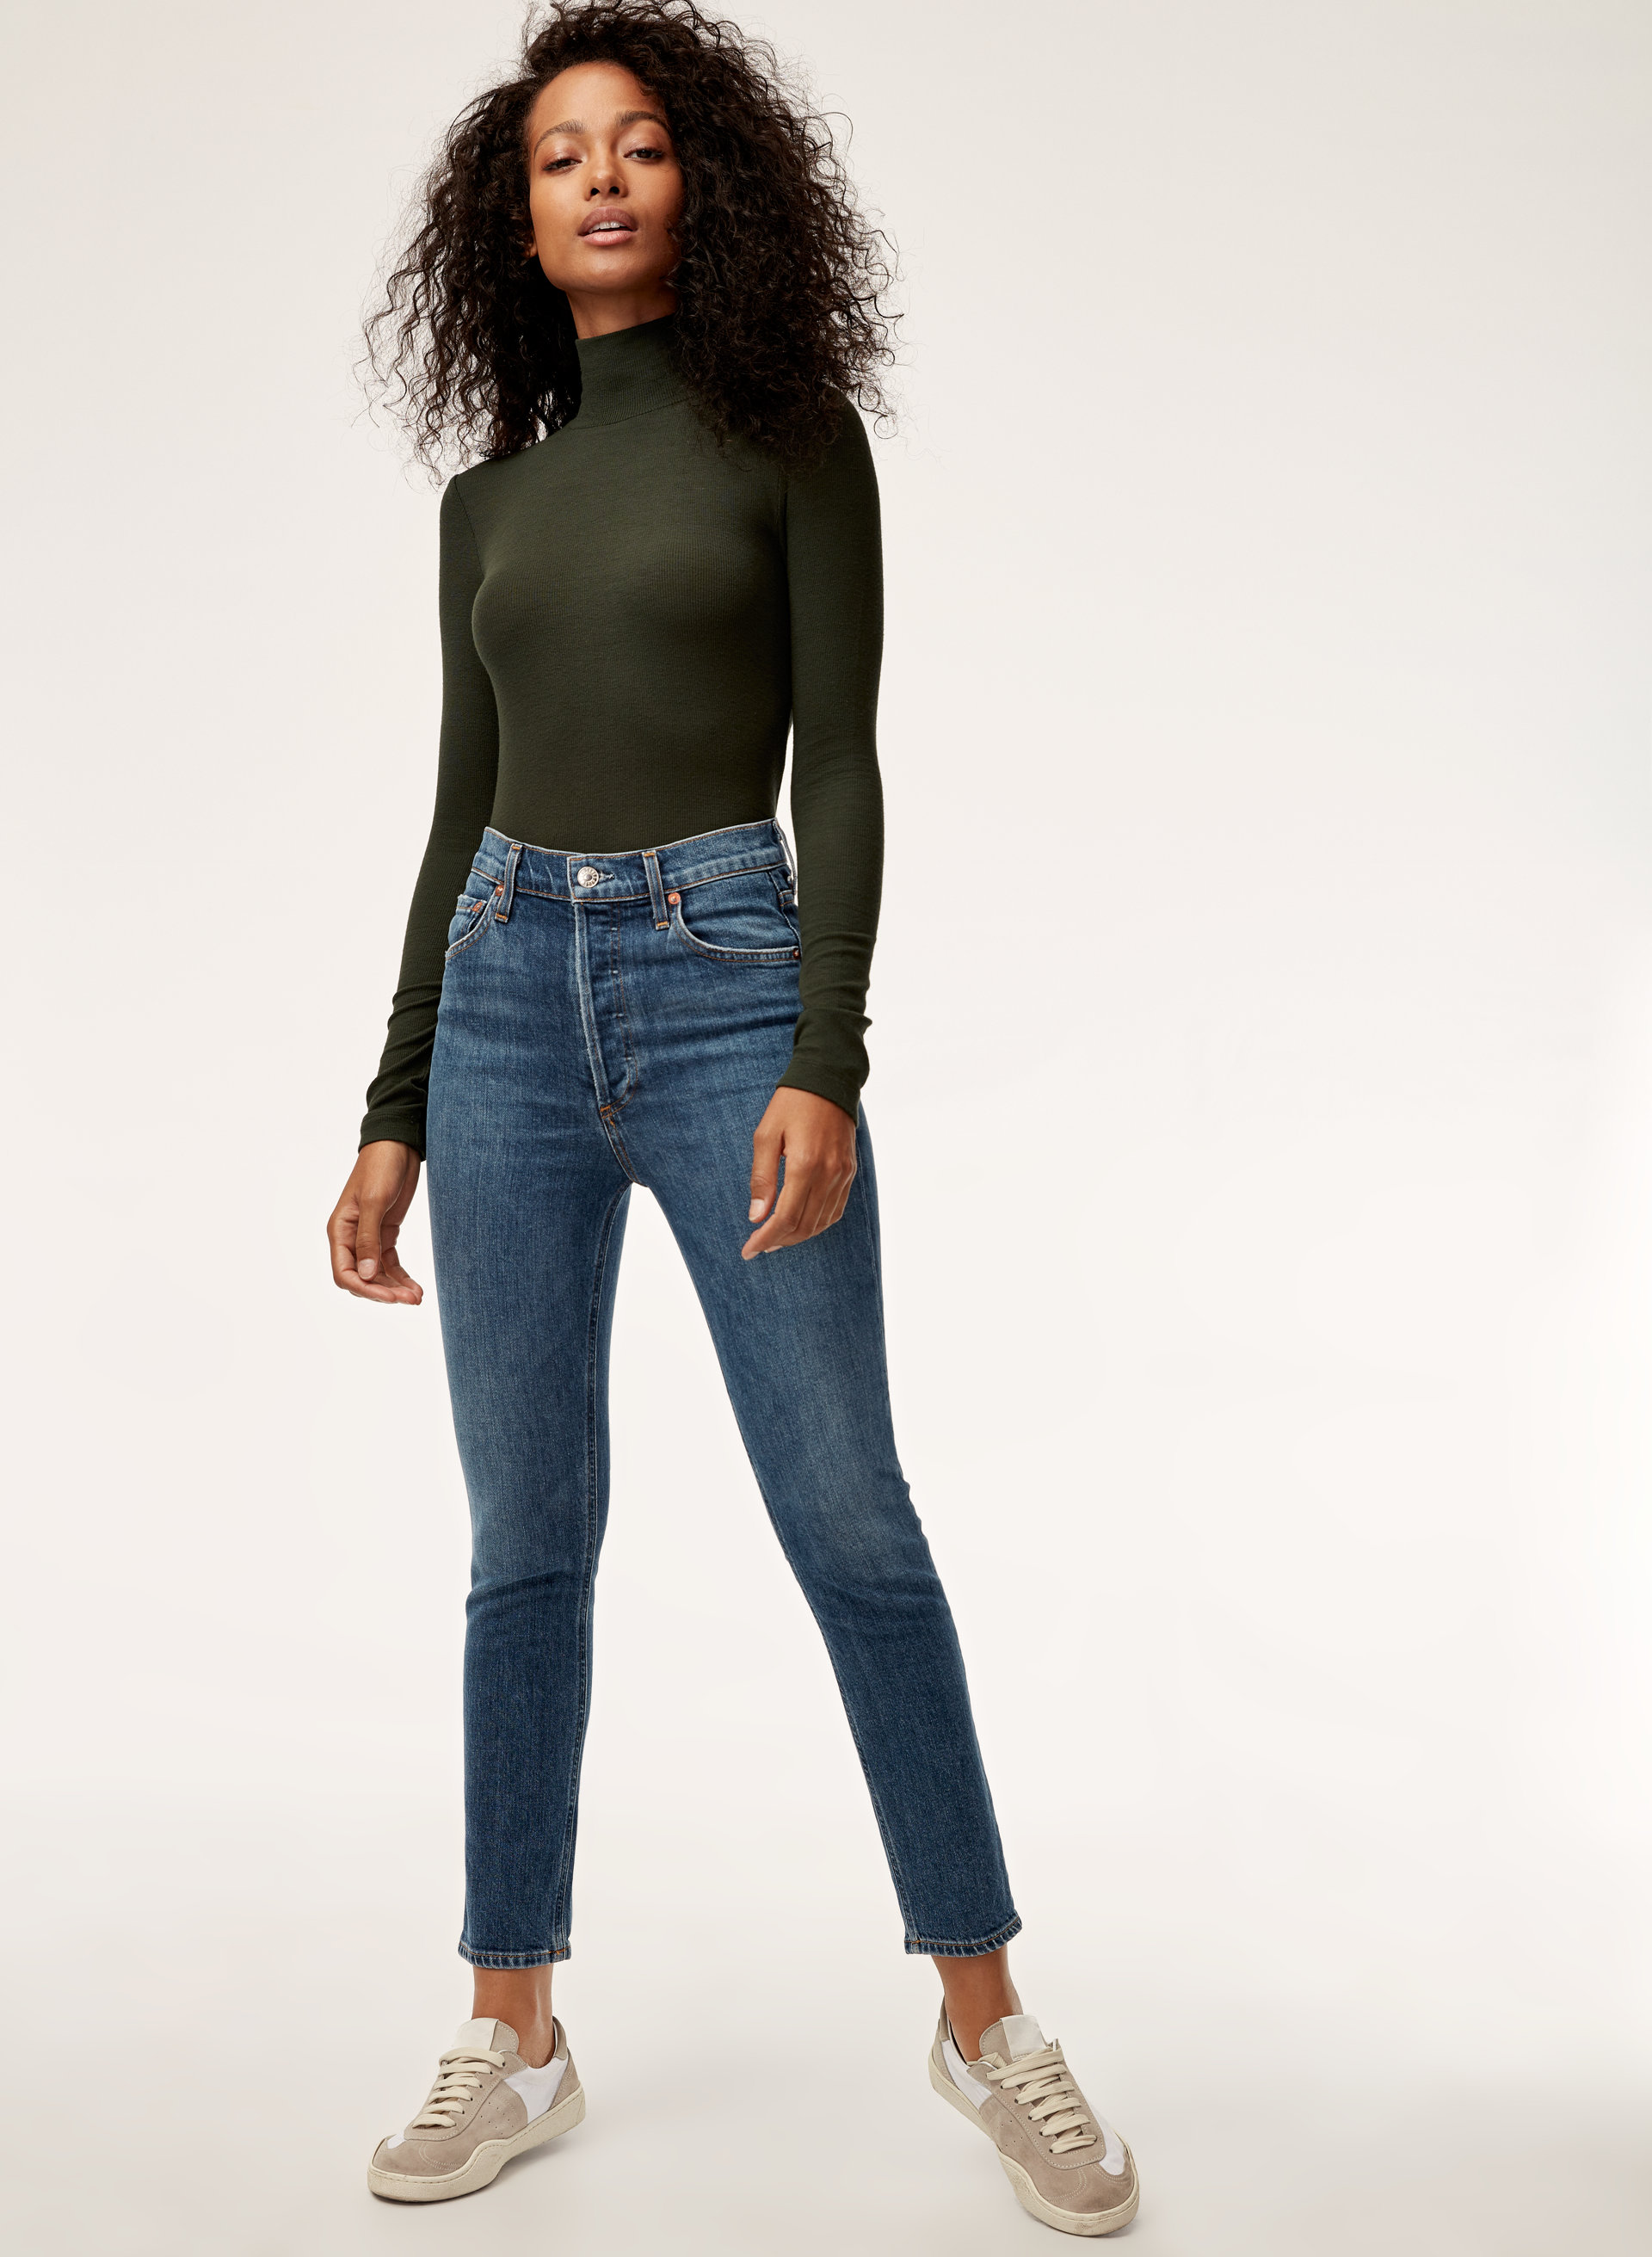 4c2d5f76058c High-waisted, button-fly jean. AGOLDE NICO SUBDUED | Aritzia ...